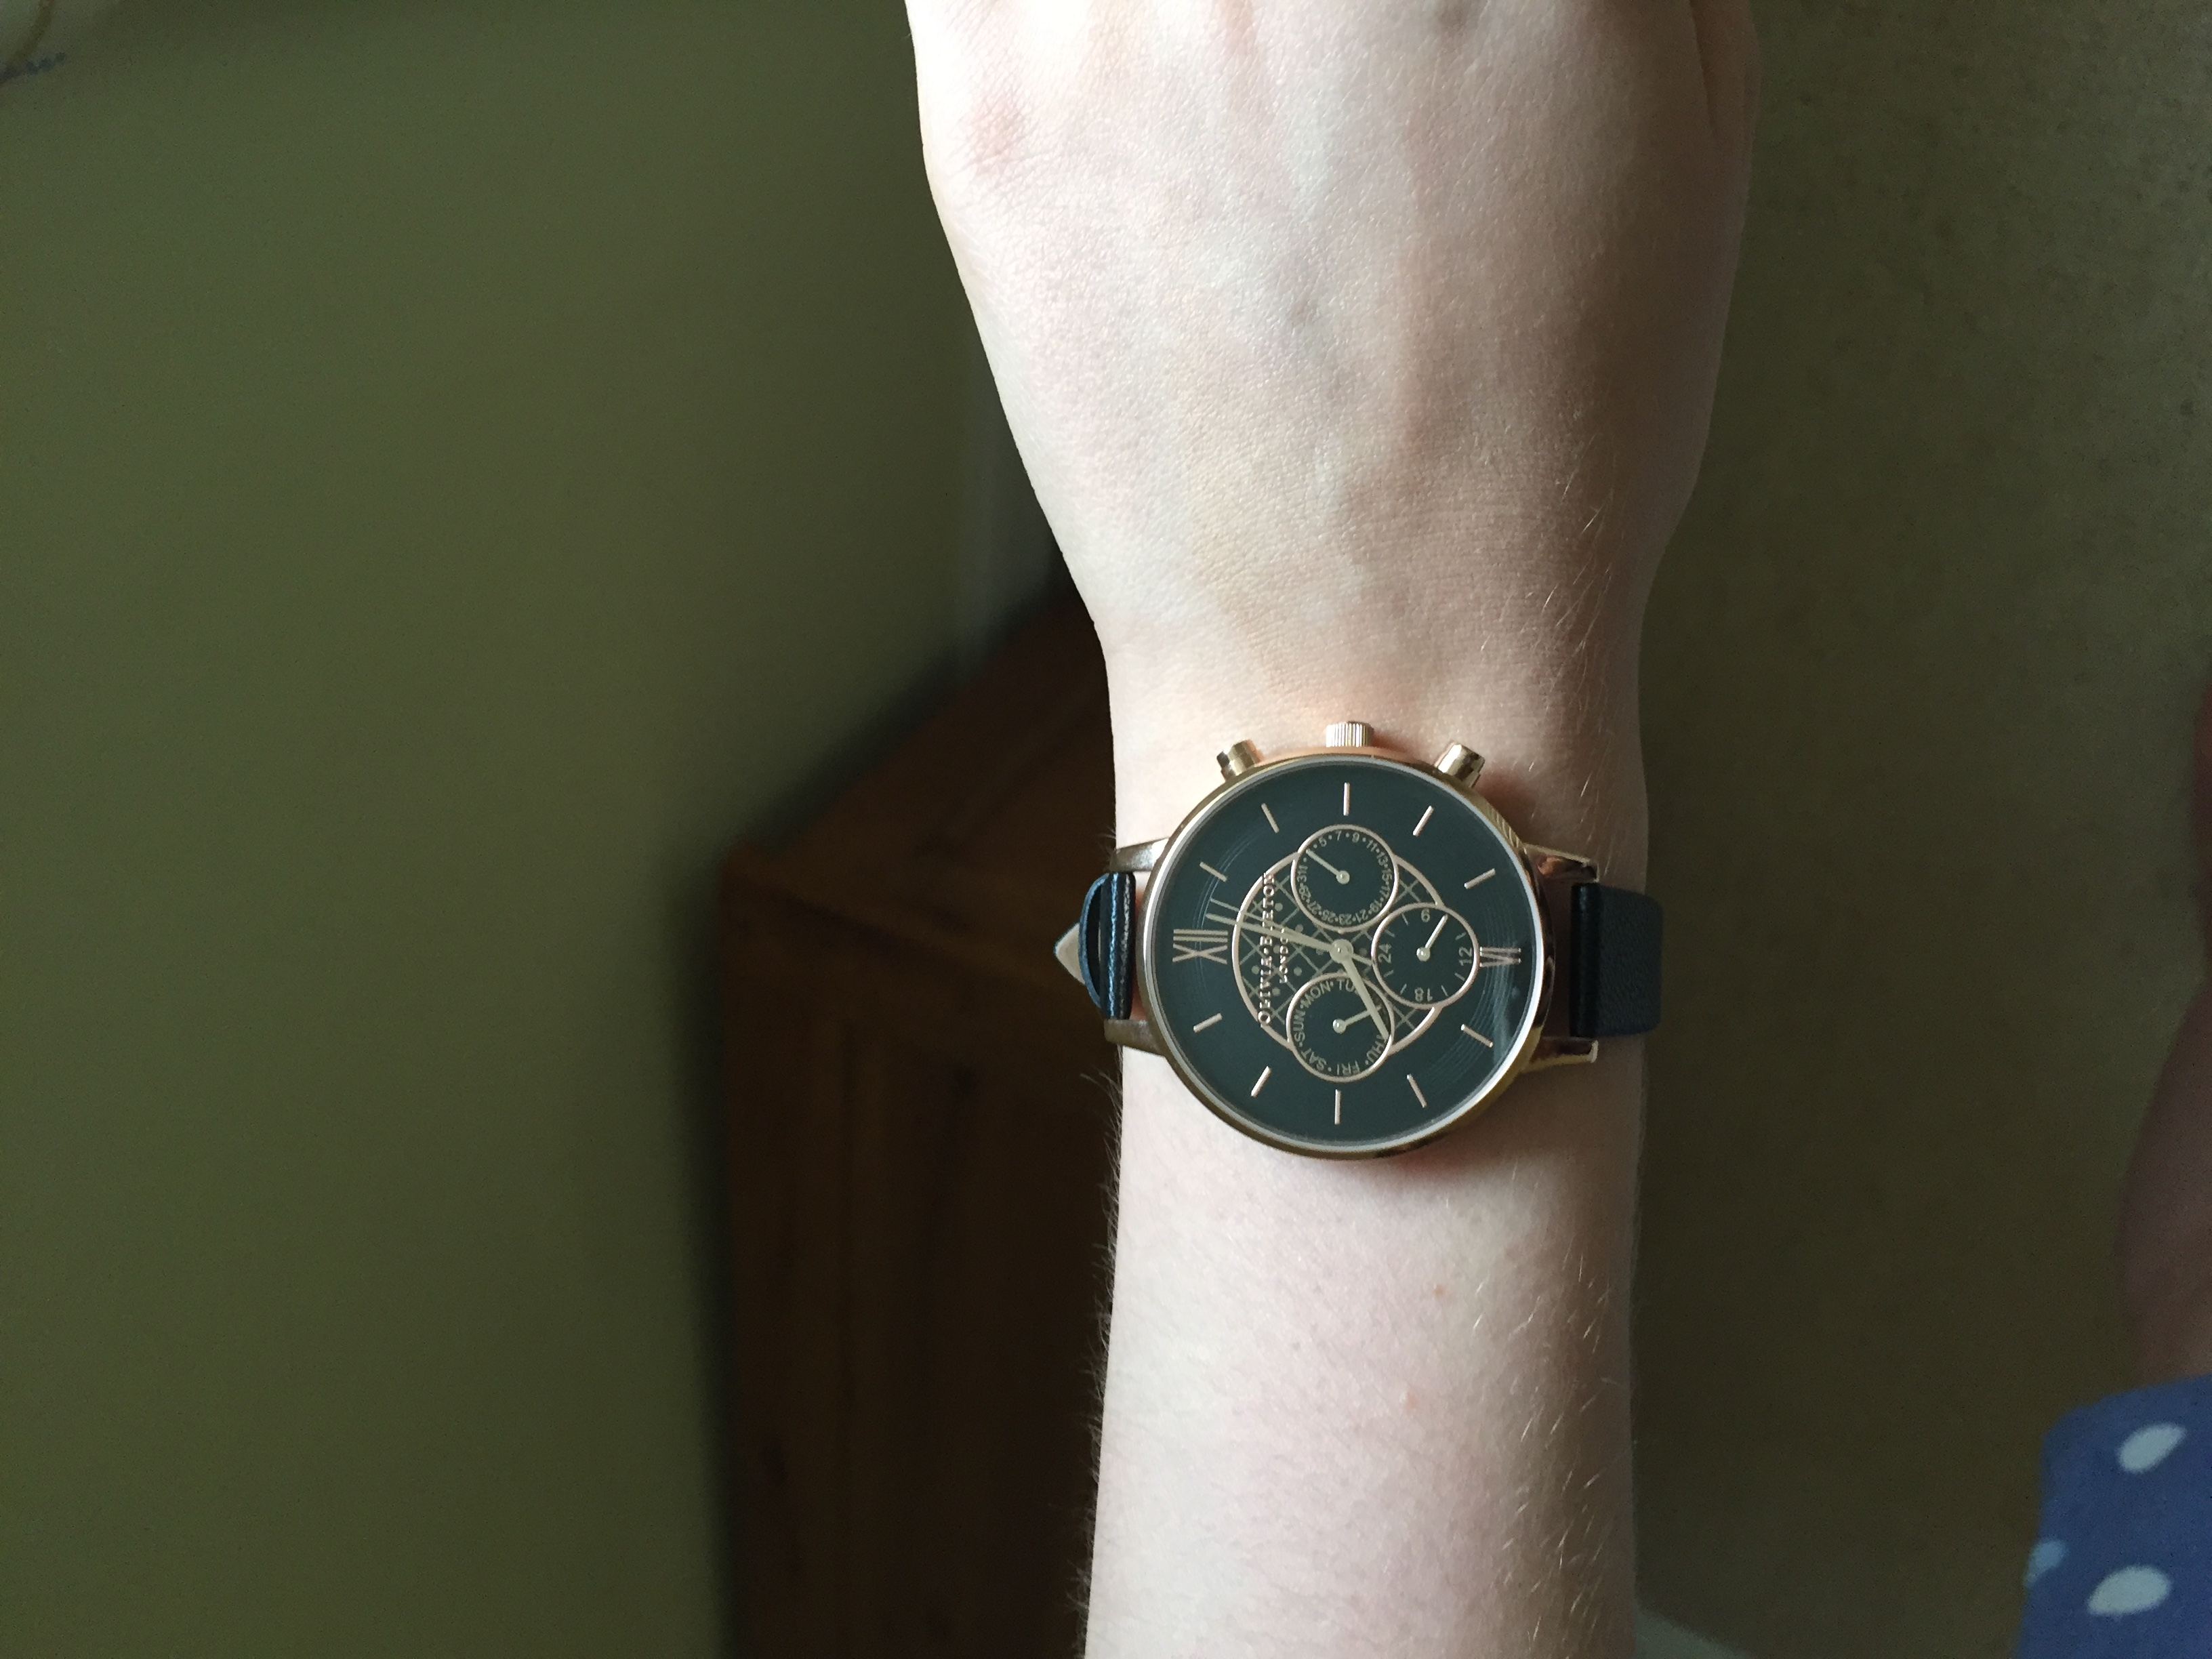 8f65eb443 My daughter asked for an Olivia Burton watch for her eighteenth birthday. I  ordered five watches for her to try on and she was to choose one ...